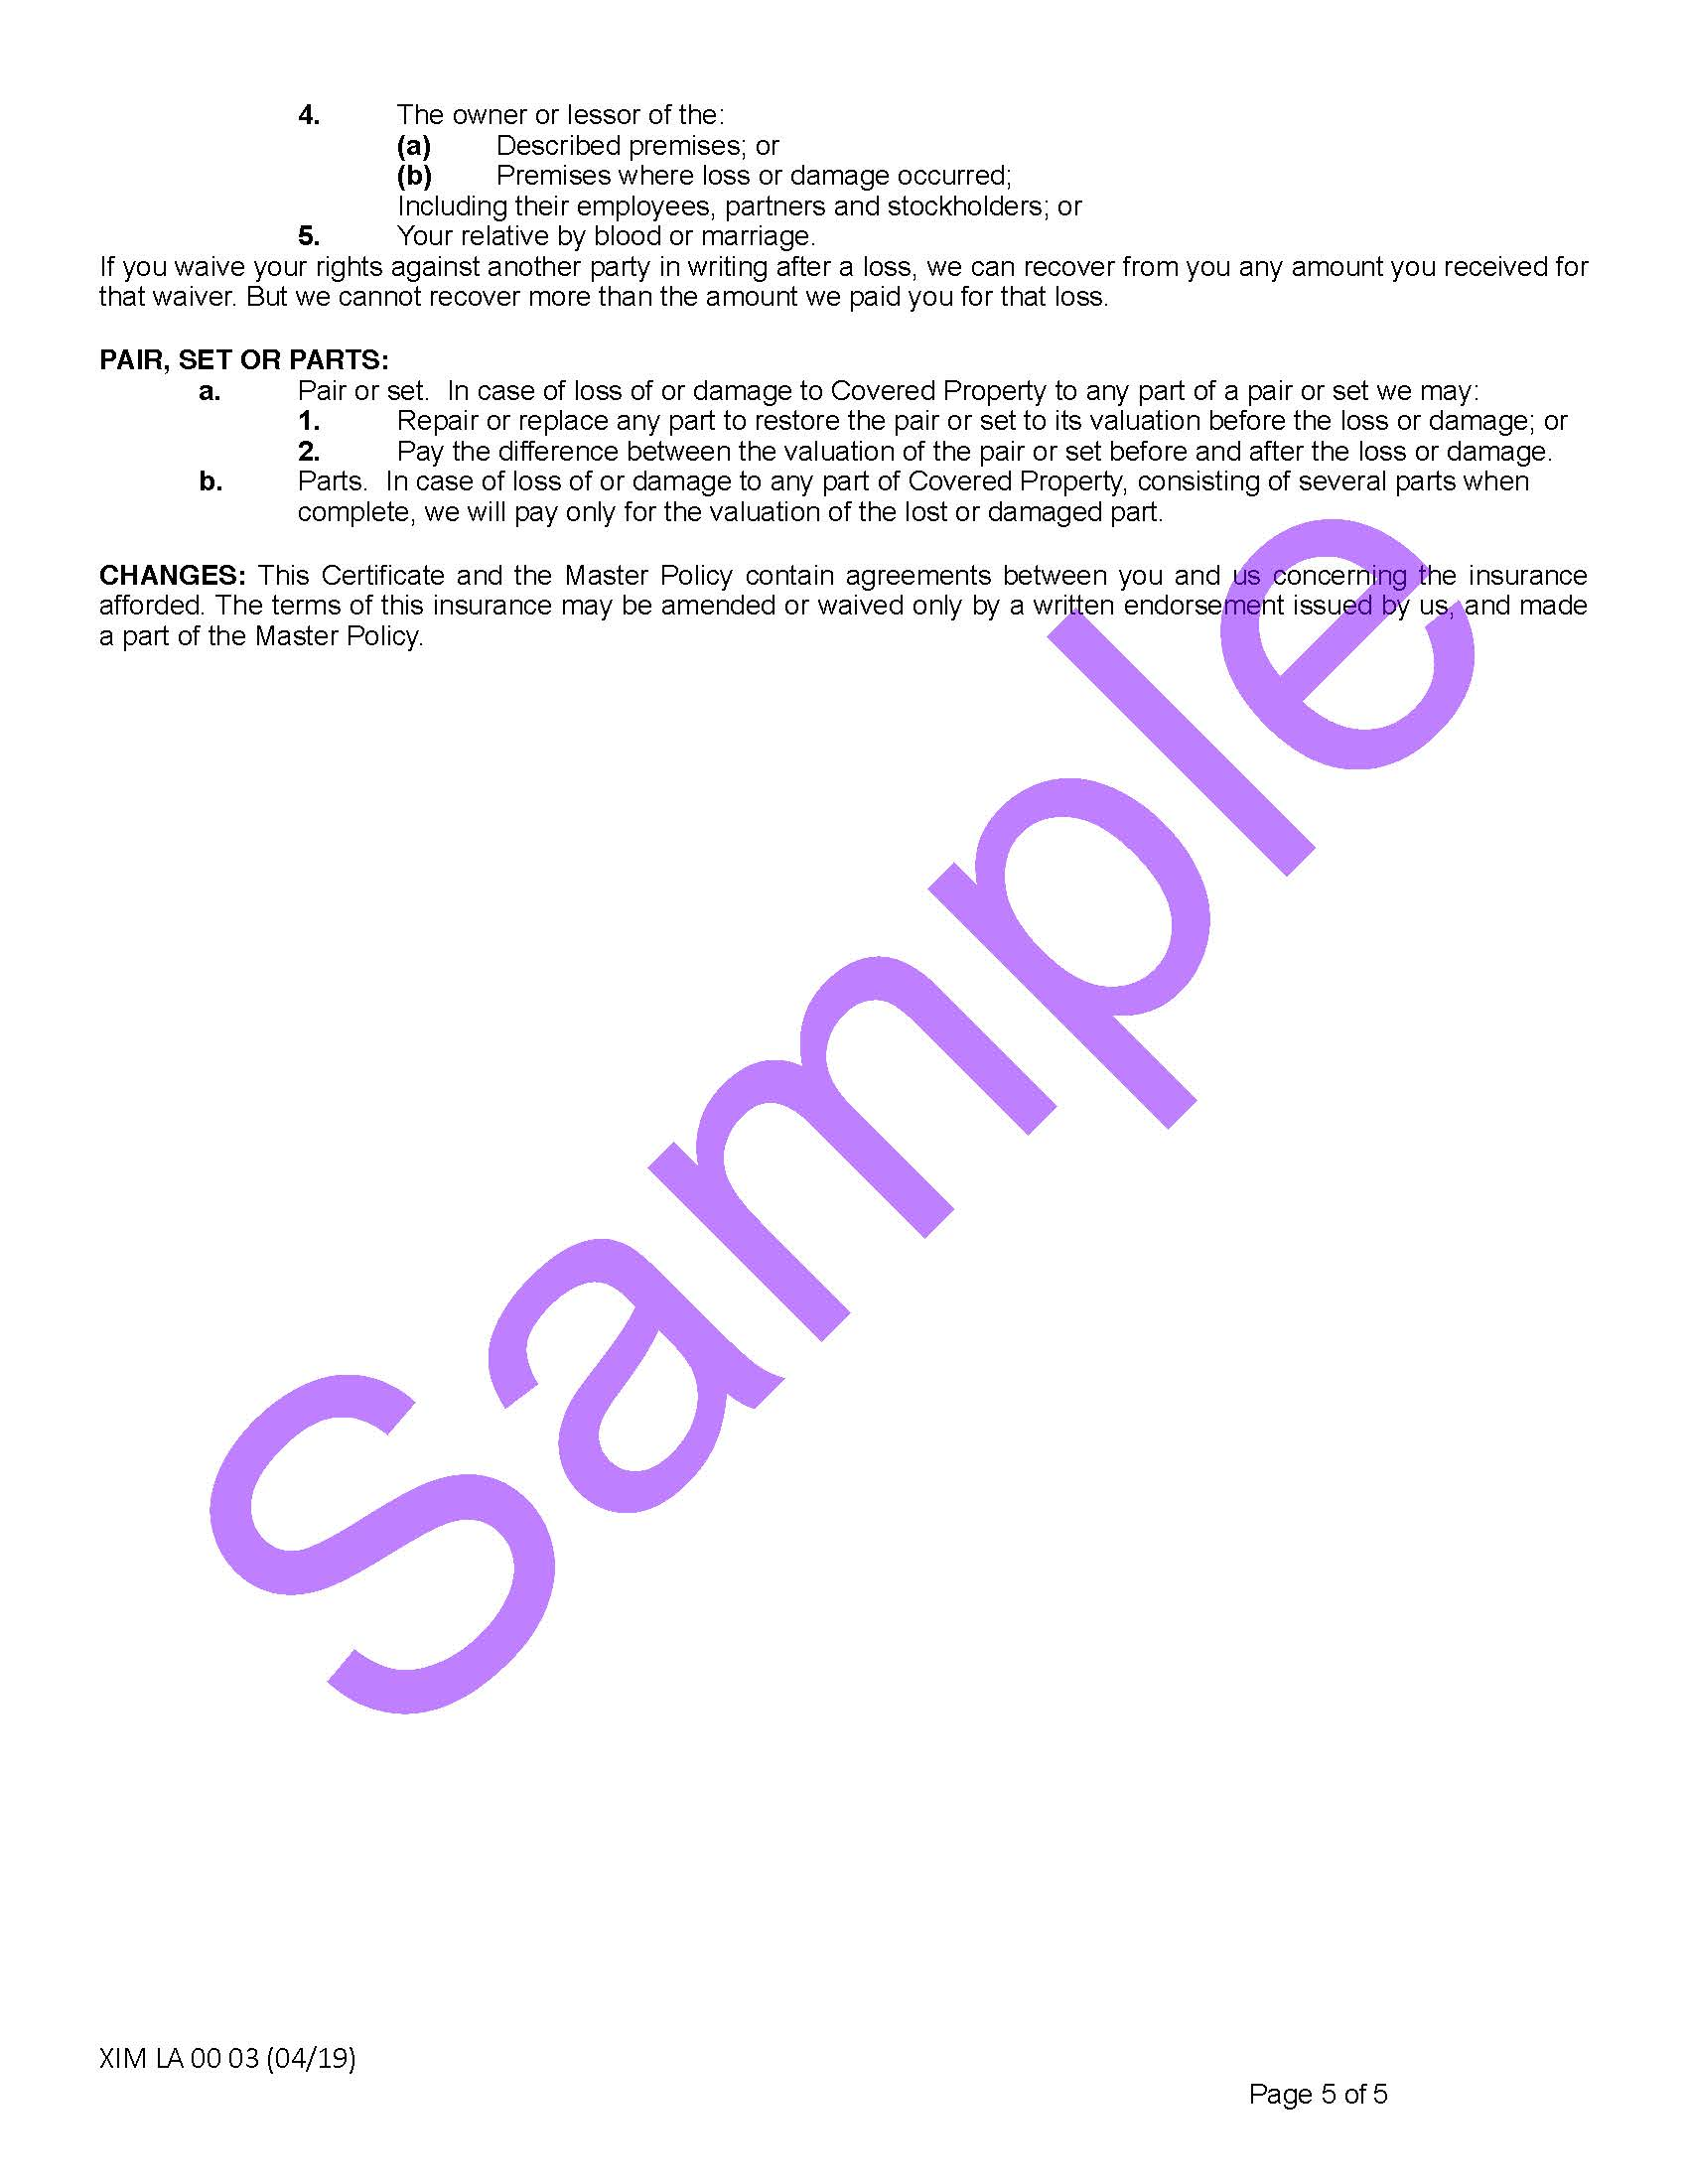 XIM LA 00 03 04 19 Louisiana Certificate of InsuranceSample_Page_5.jpg